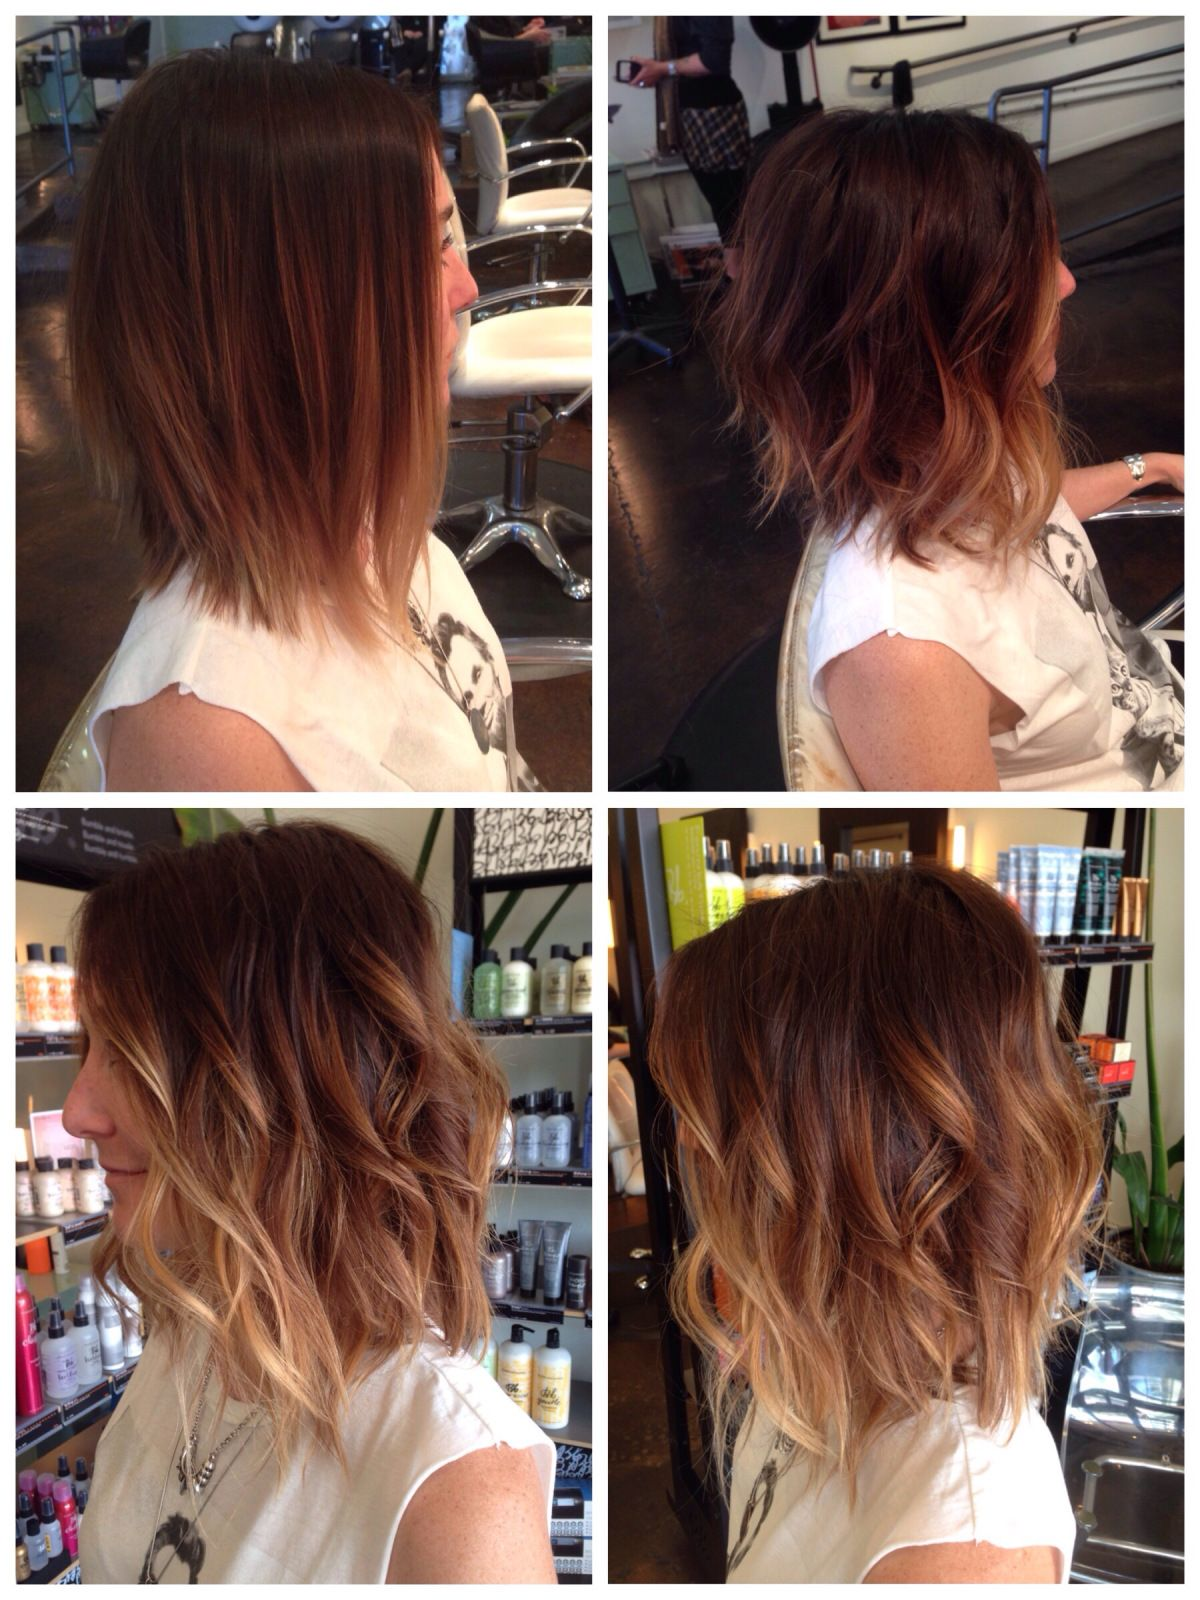 Length hair colors and cuts pinterest ombre lob and long bob